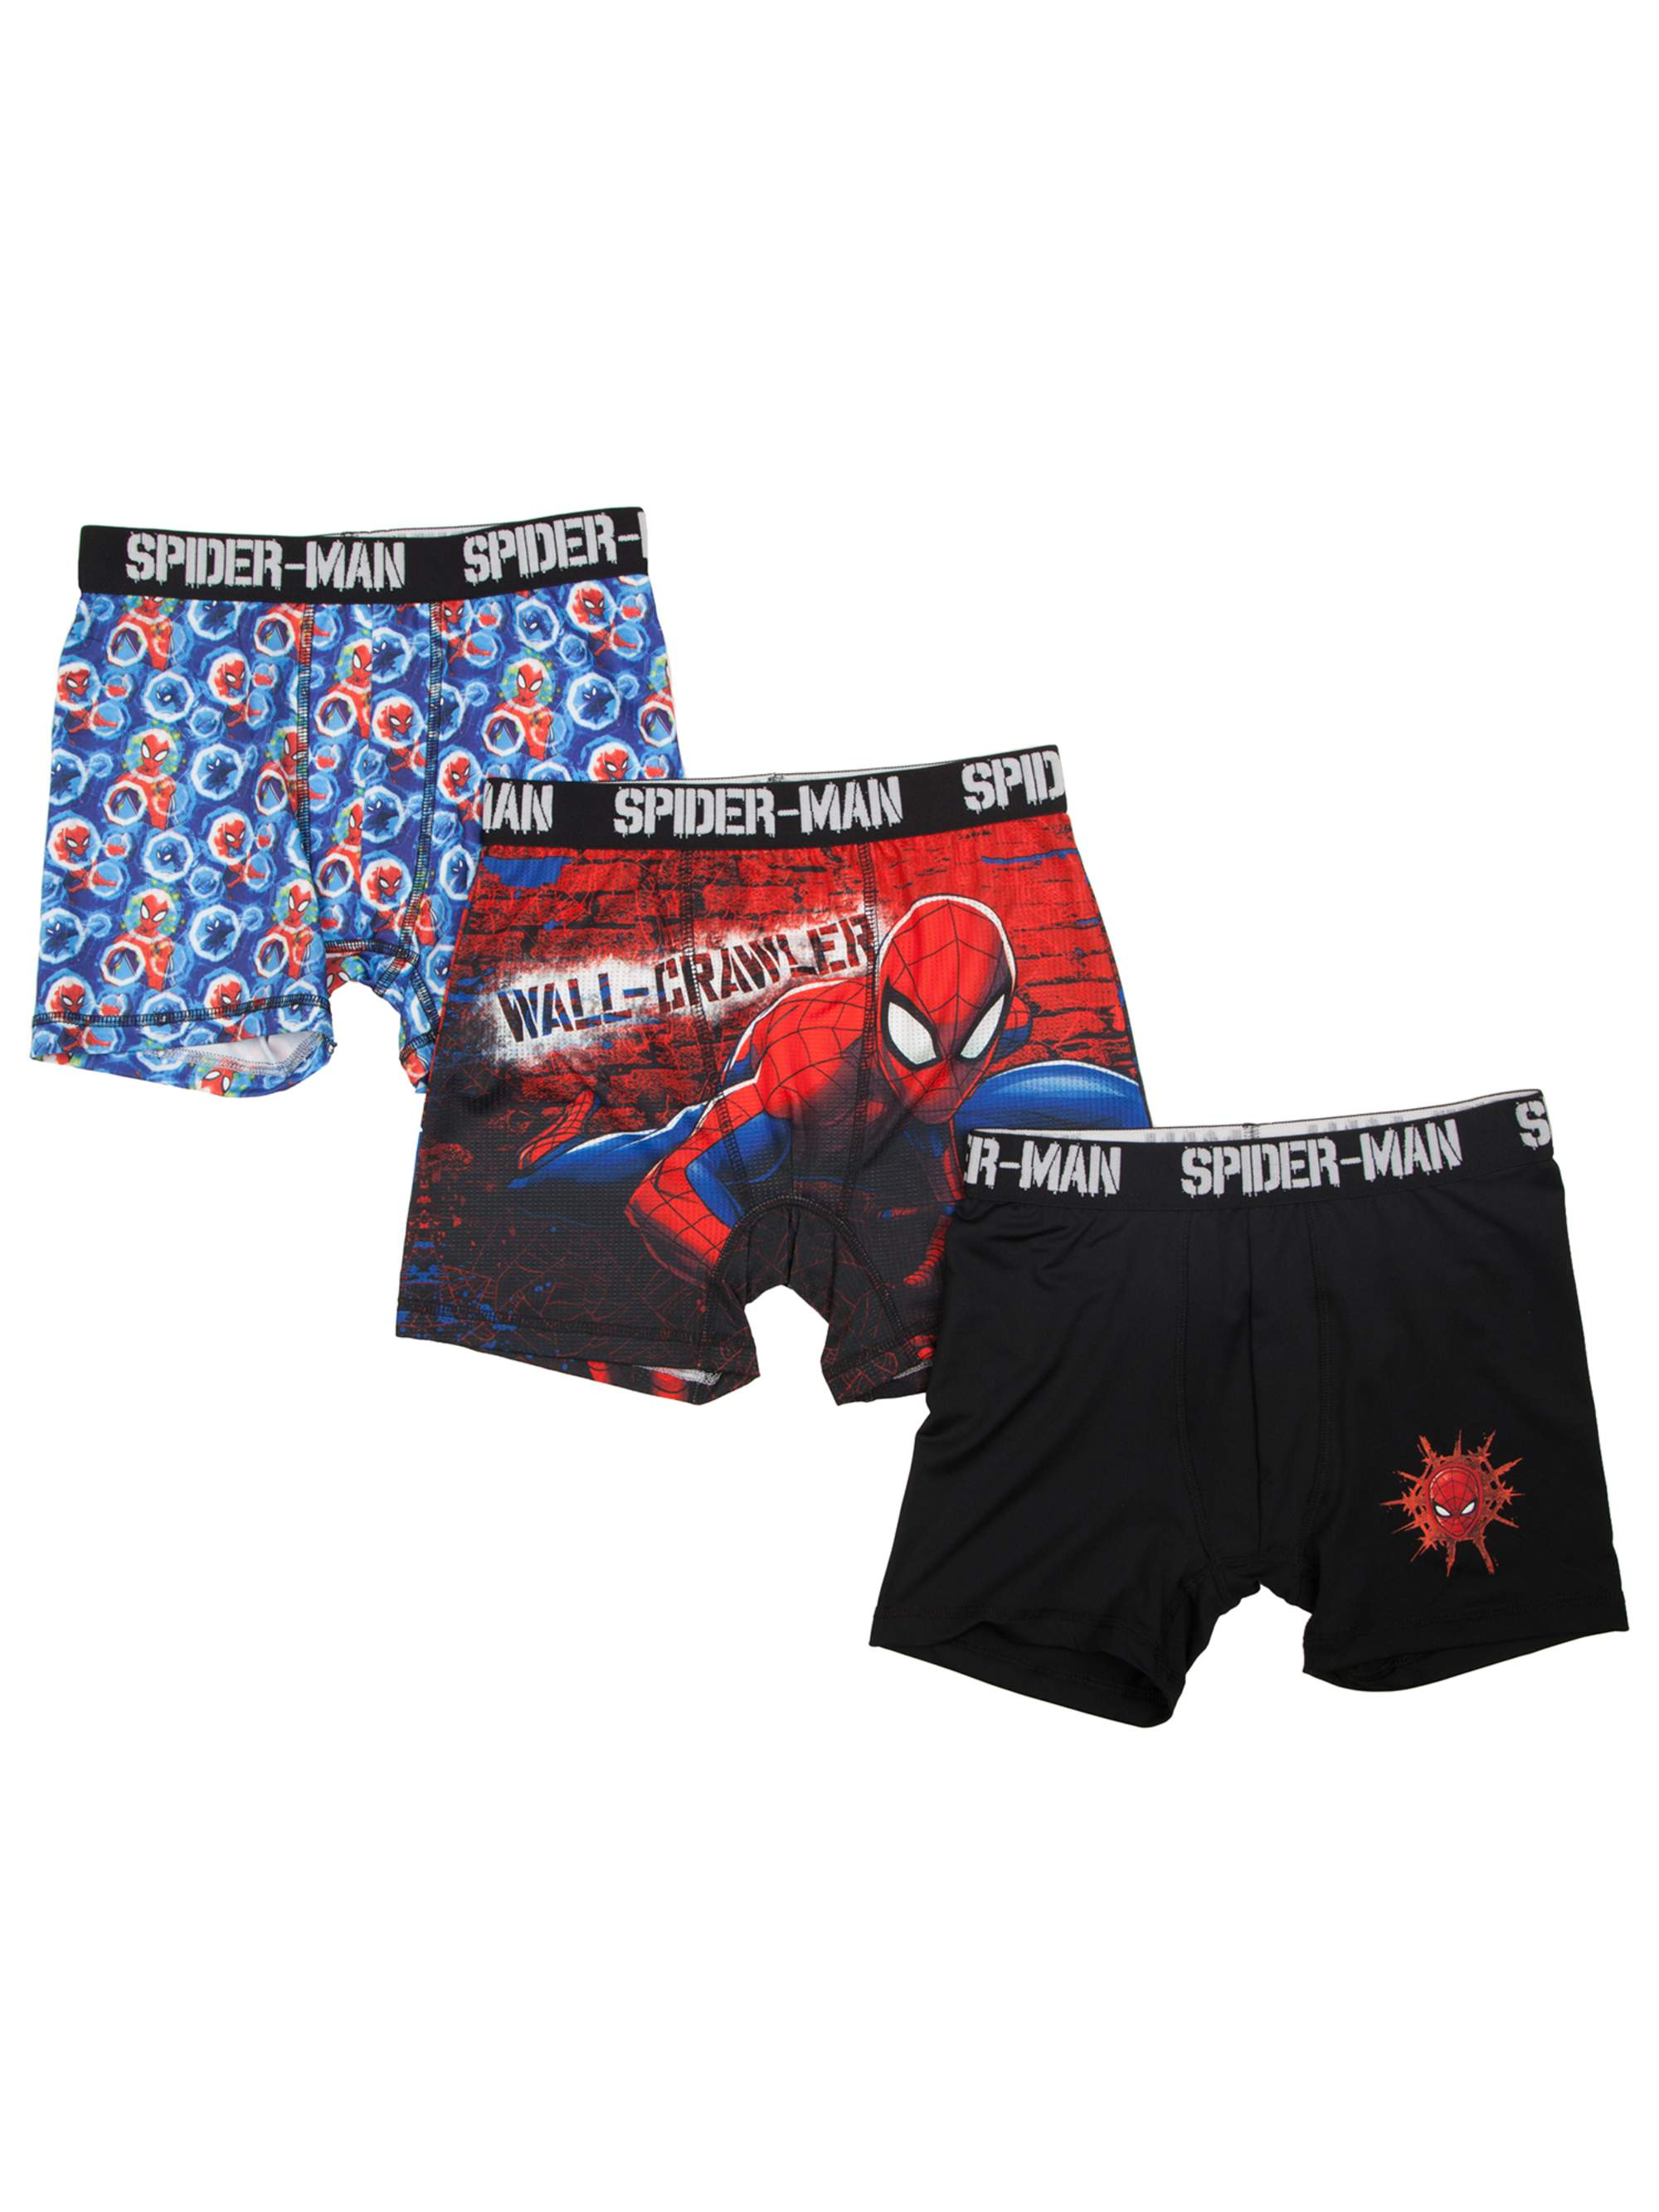 12 pairs BOYS BOXER SHORTS TRUNKS SPIDER FOOTBALL CARS 3 4 5 6 7 8 9 10 12 Years